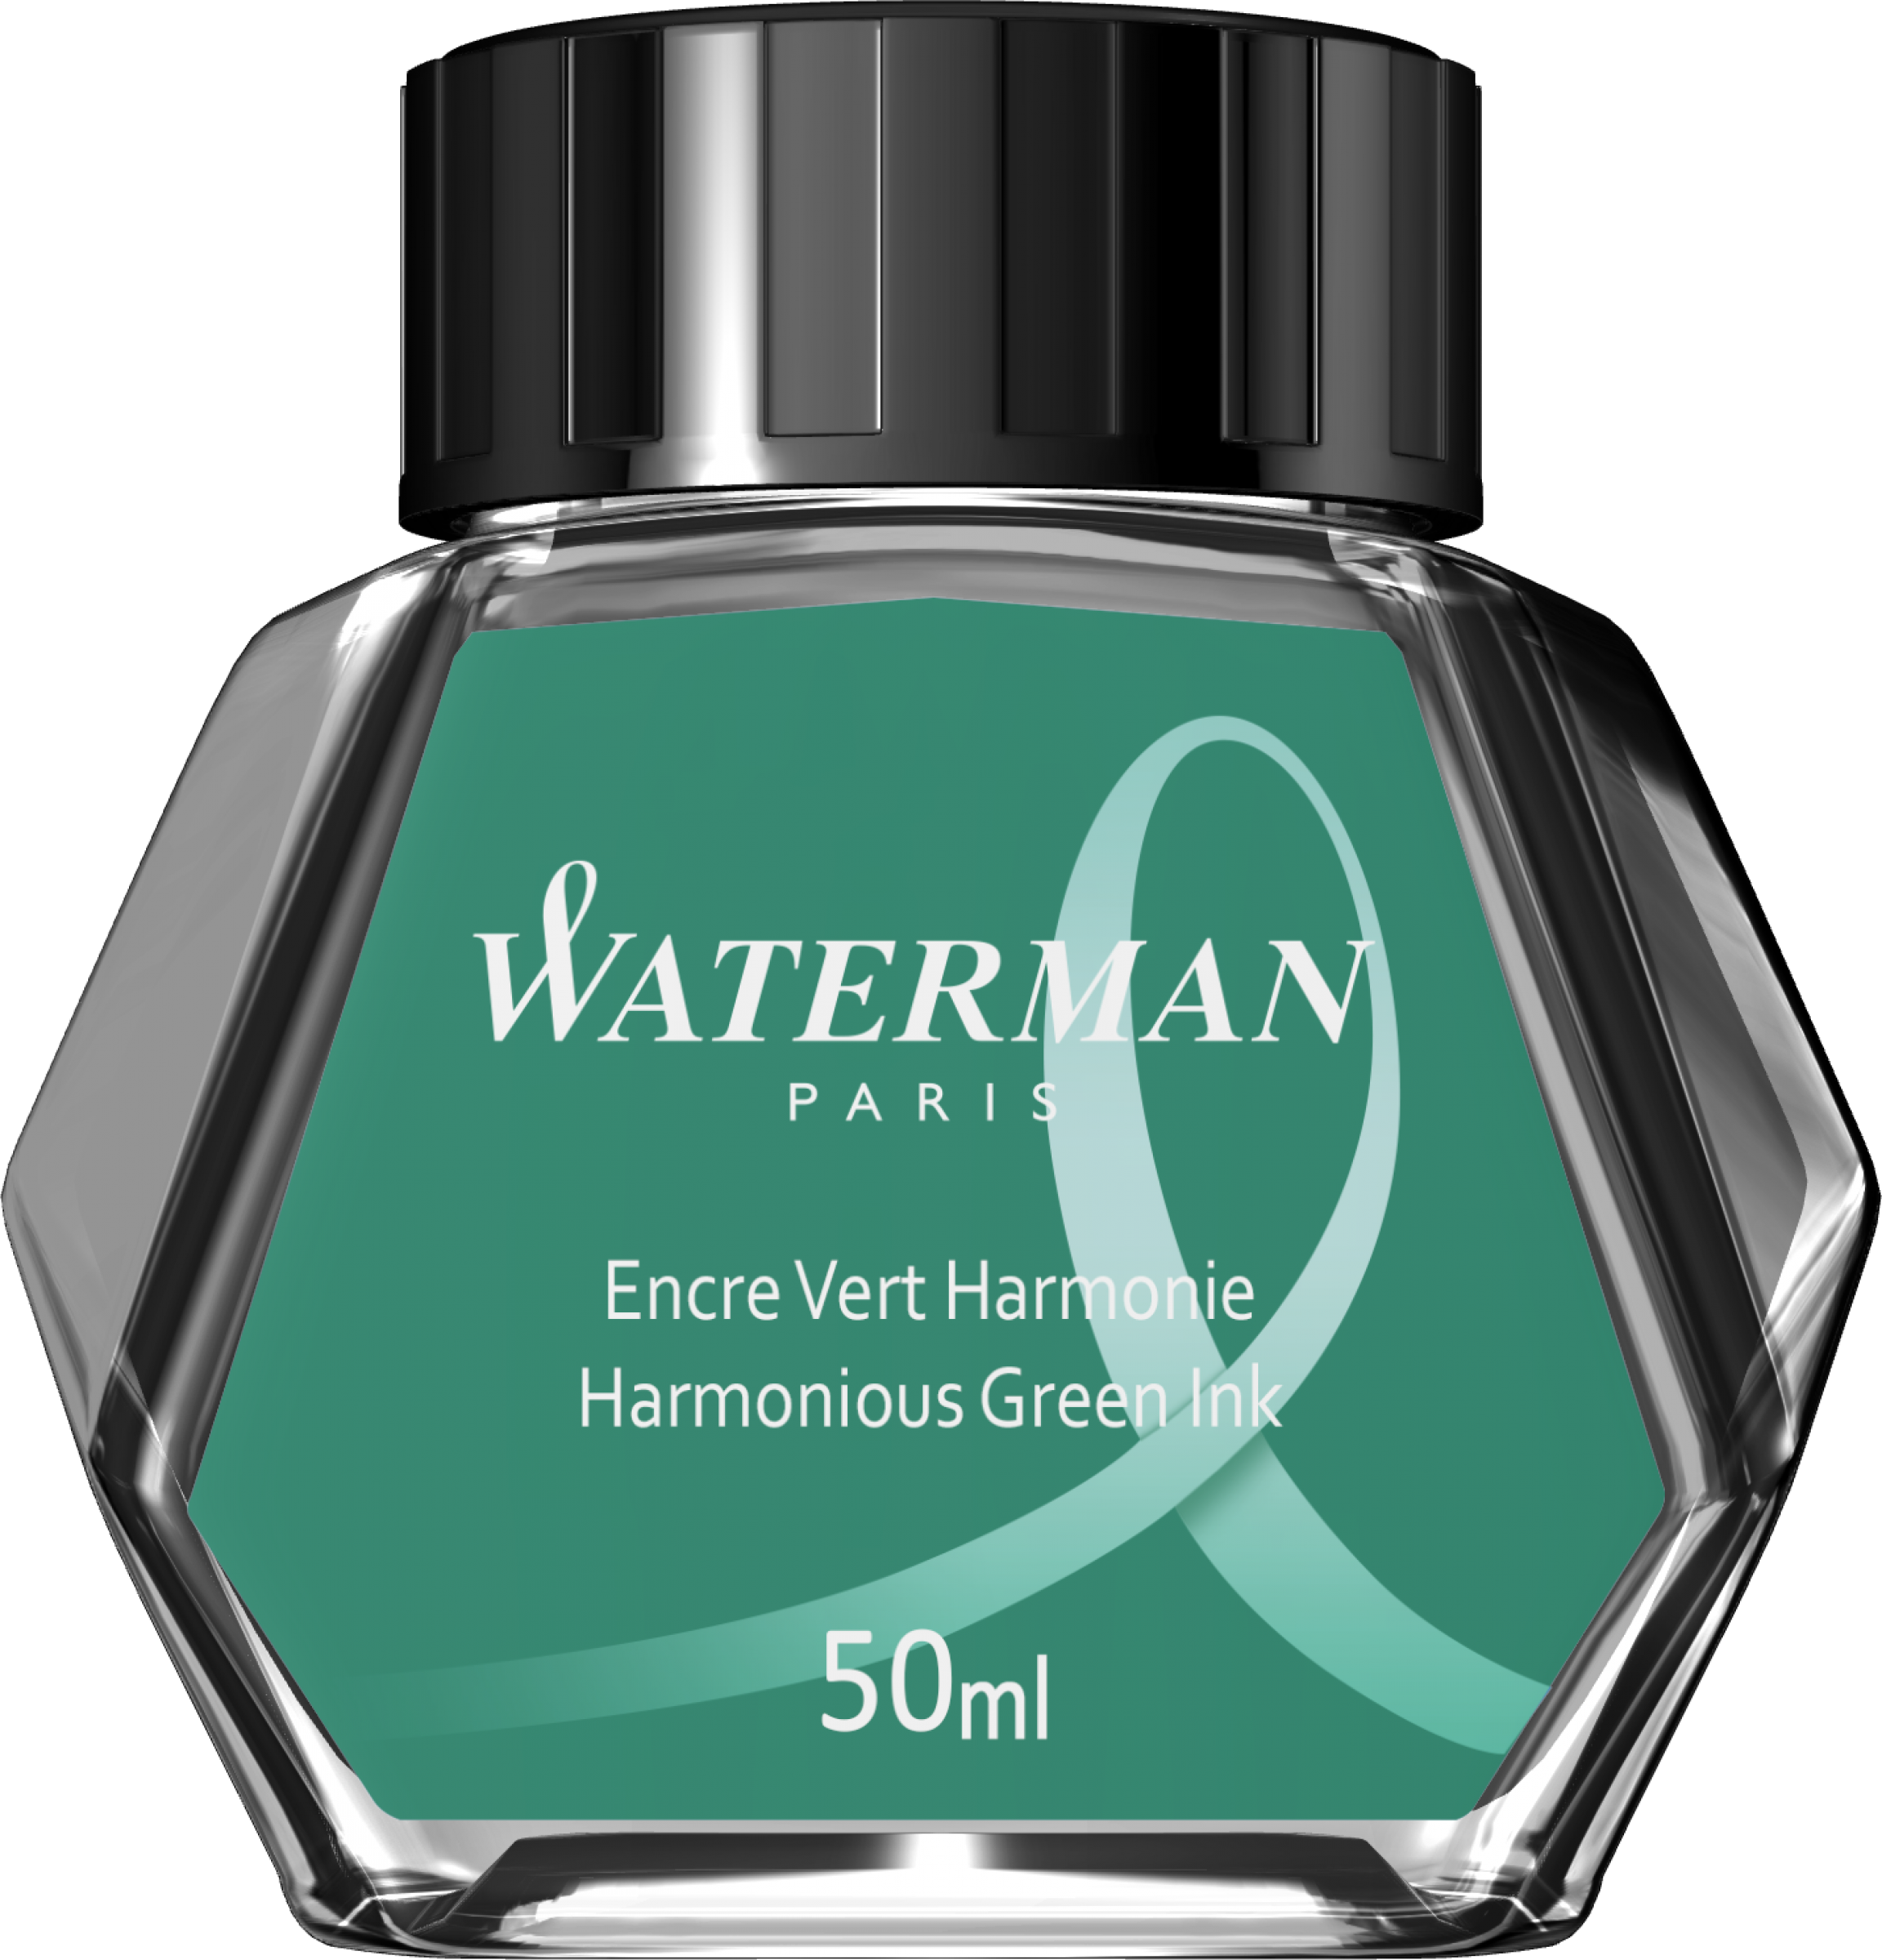 Caligrafie Cerneala Waterman verde